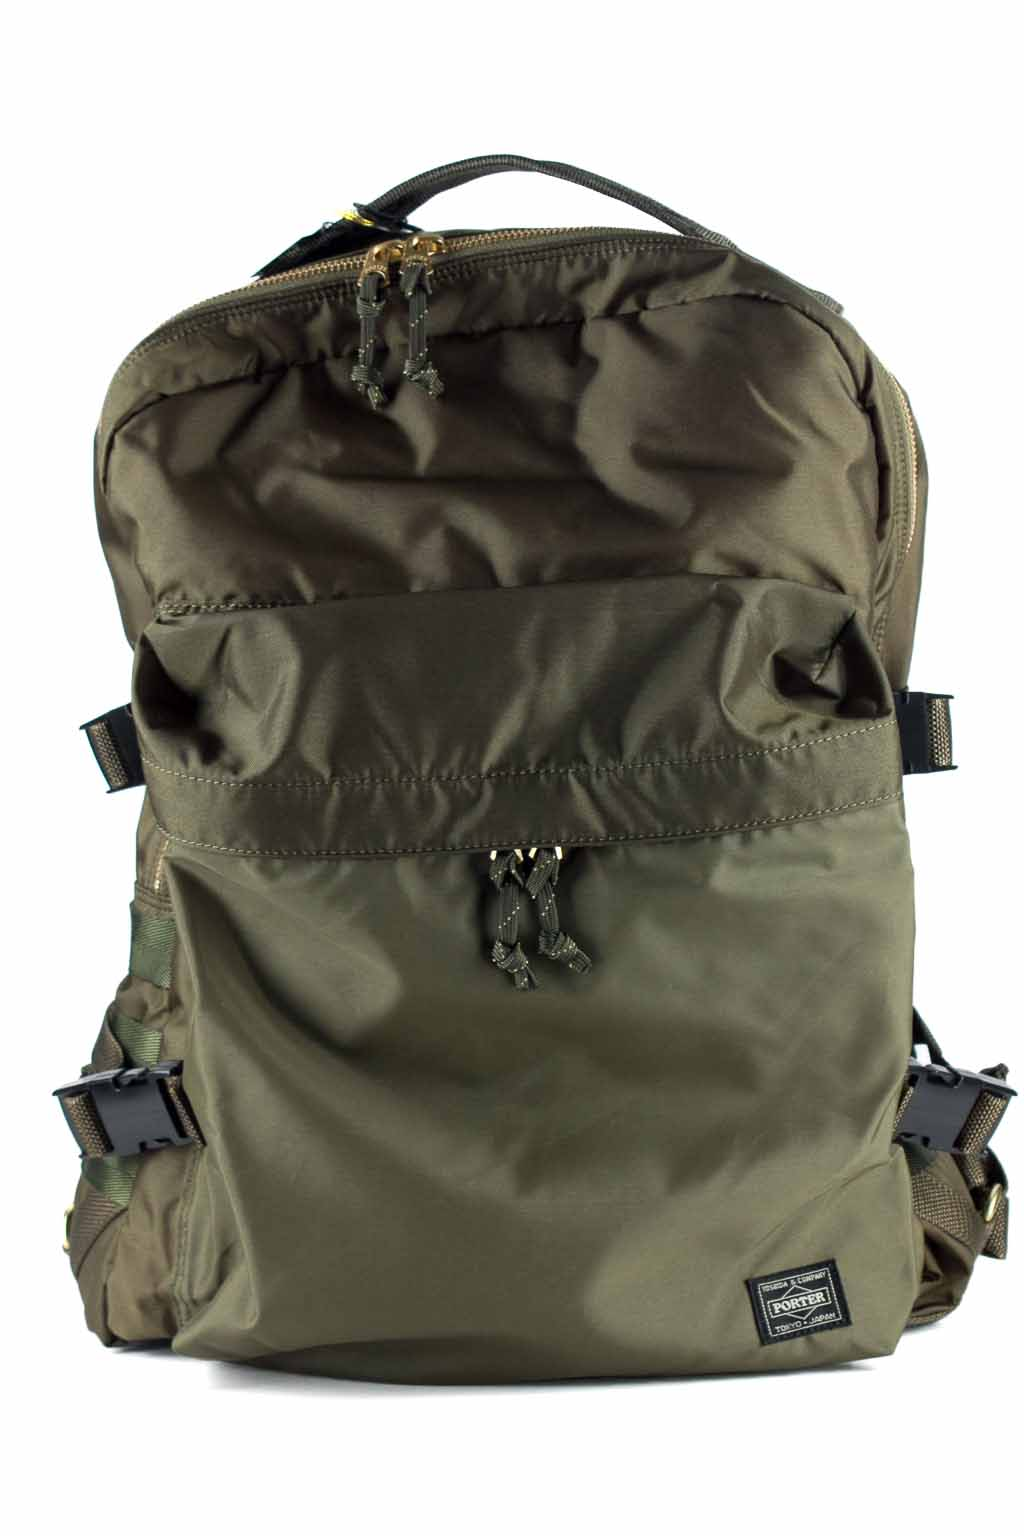 Porter Force - Day Pack - Olive drab